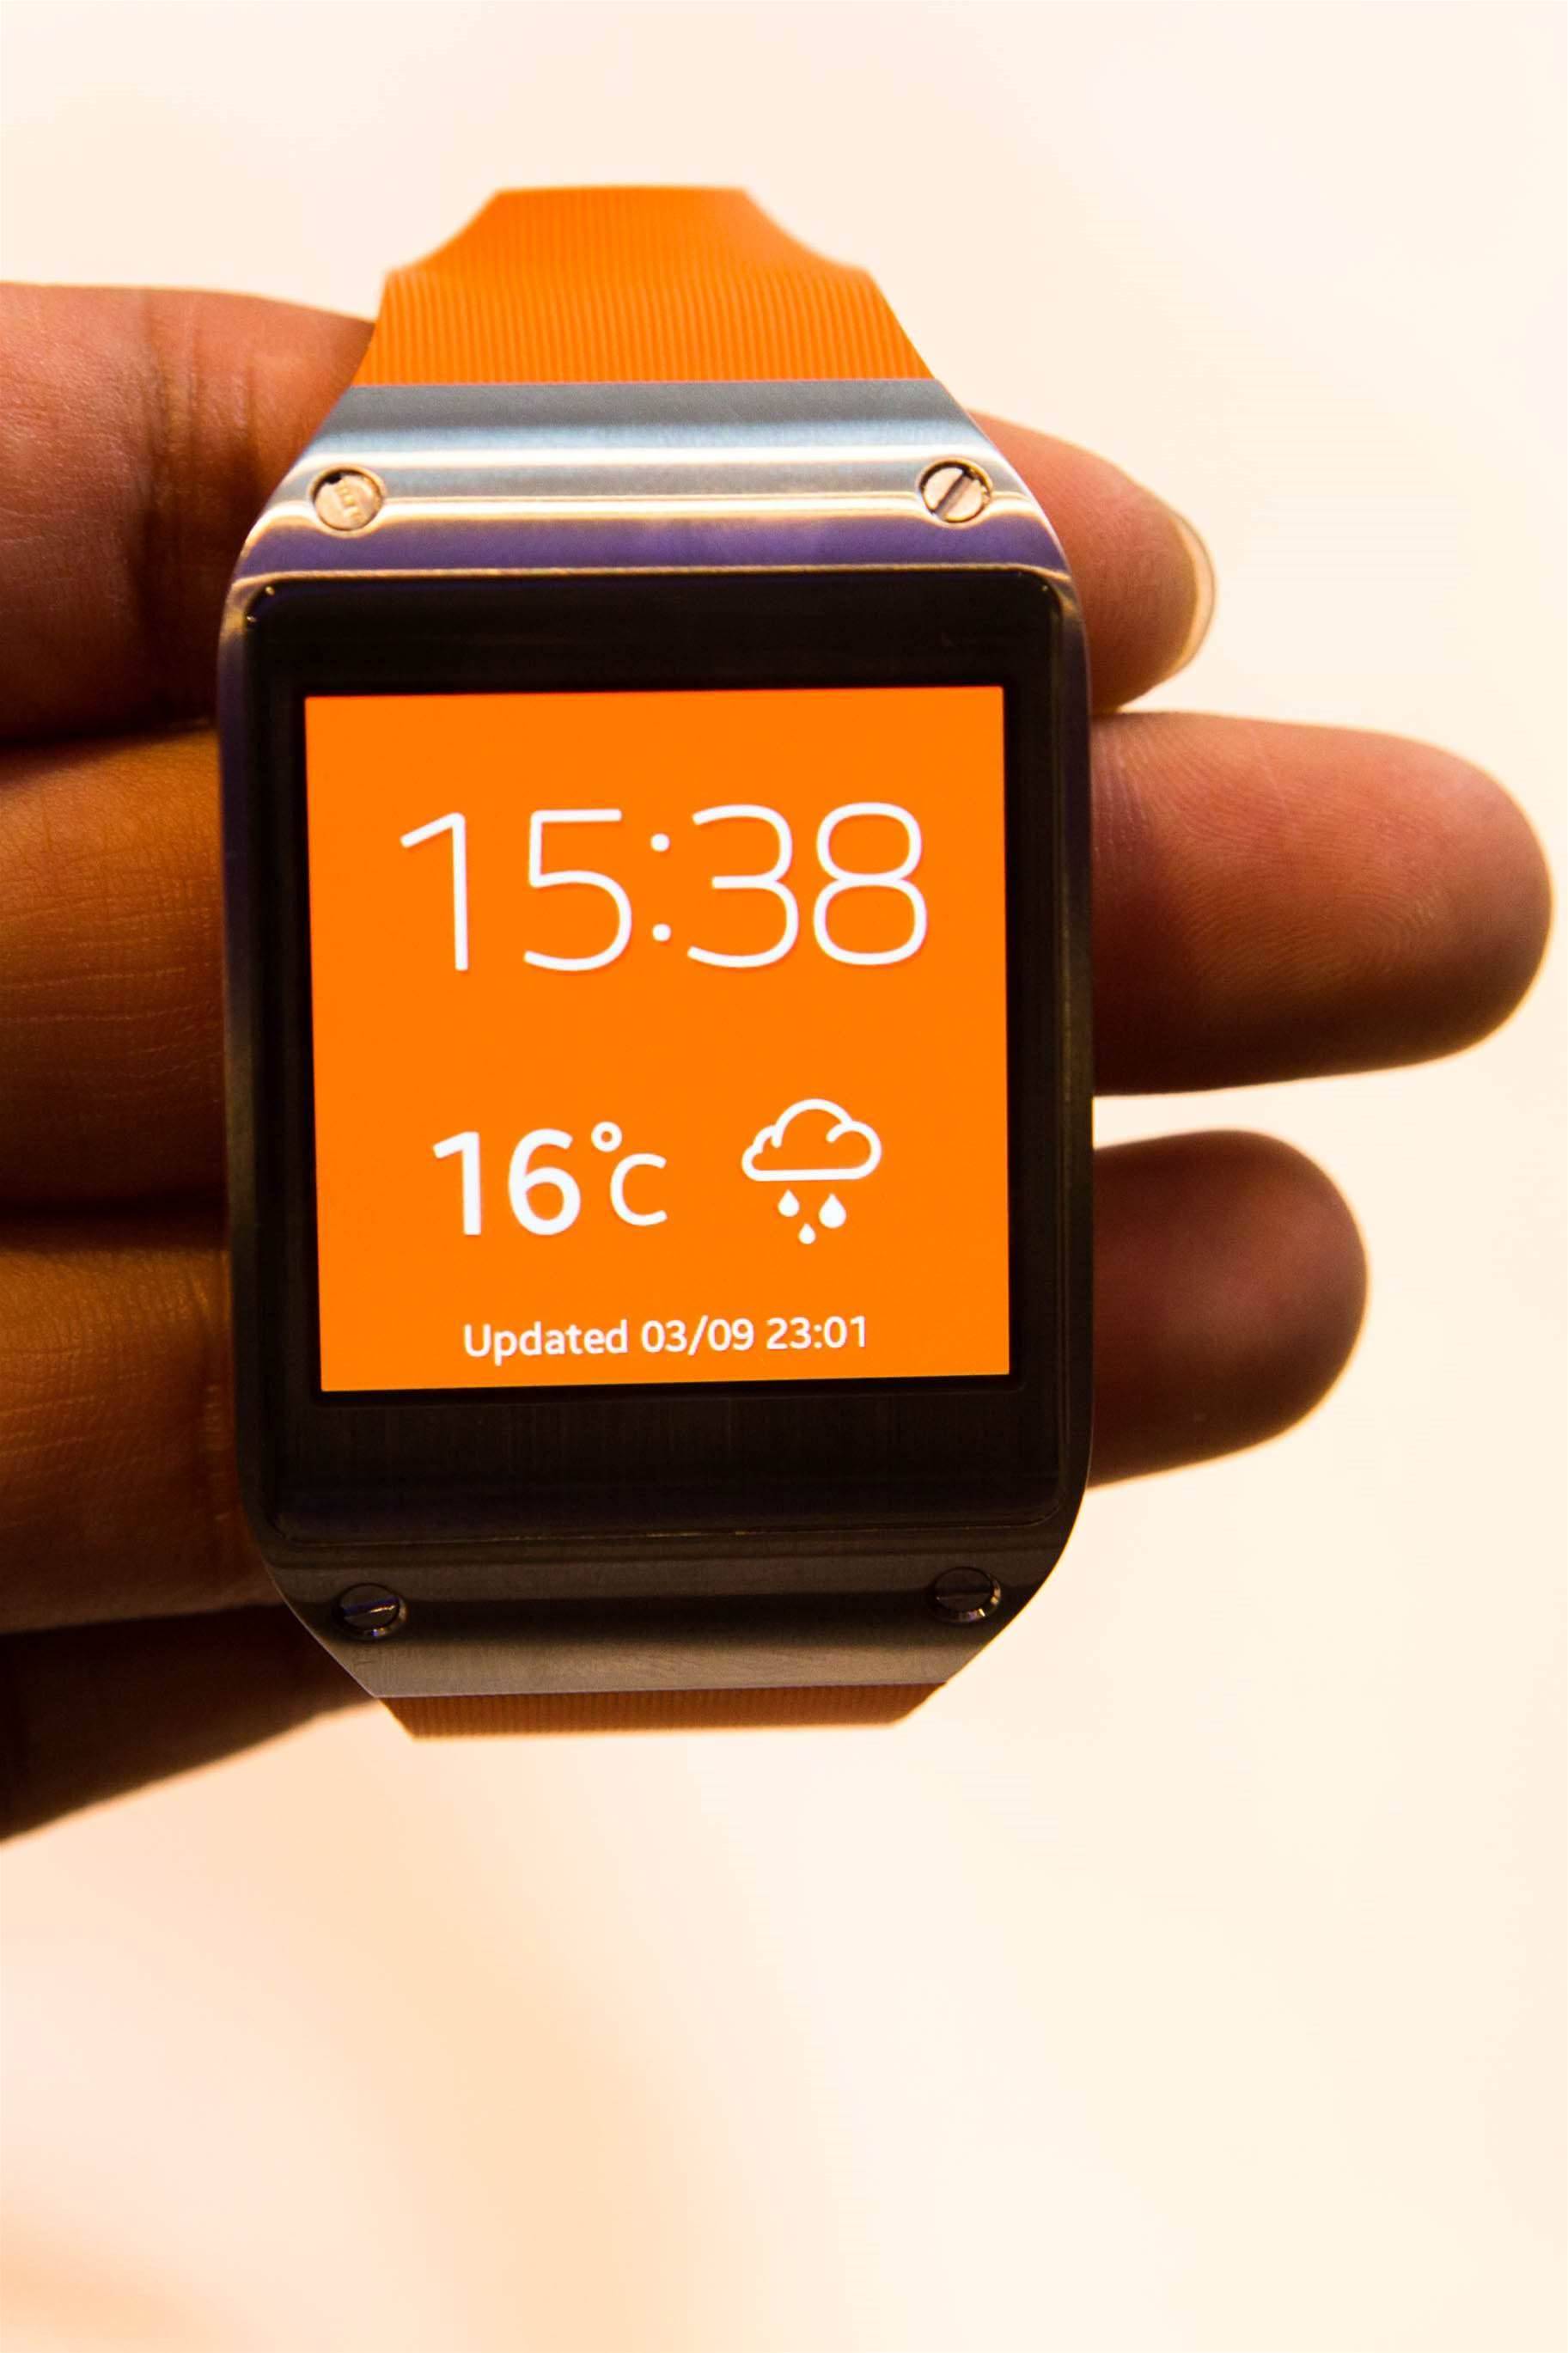 Hands on gallery: Samsung Galaxy Gear